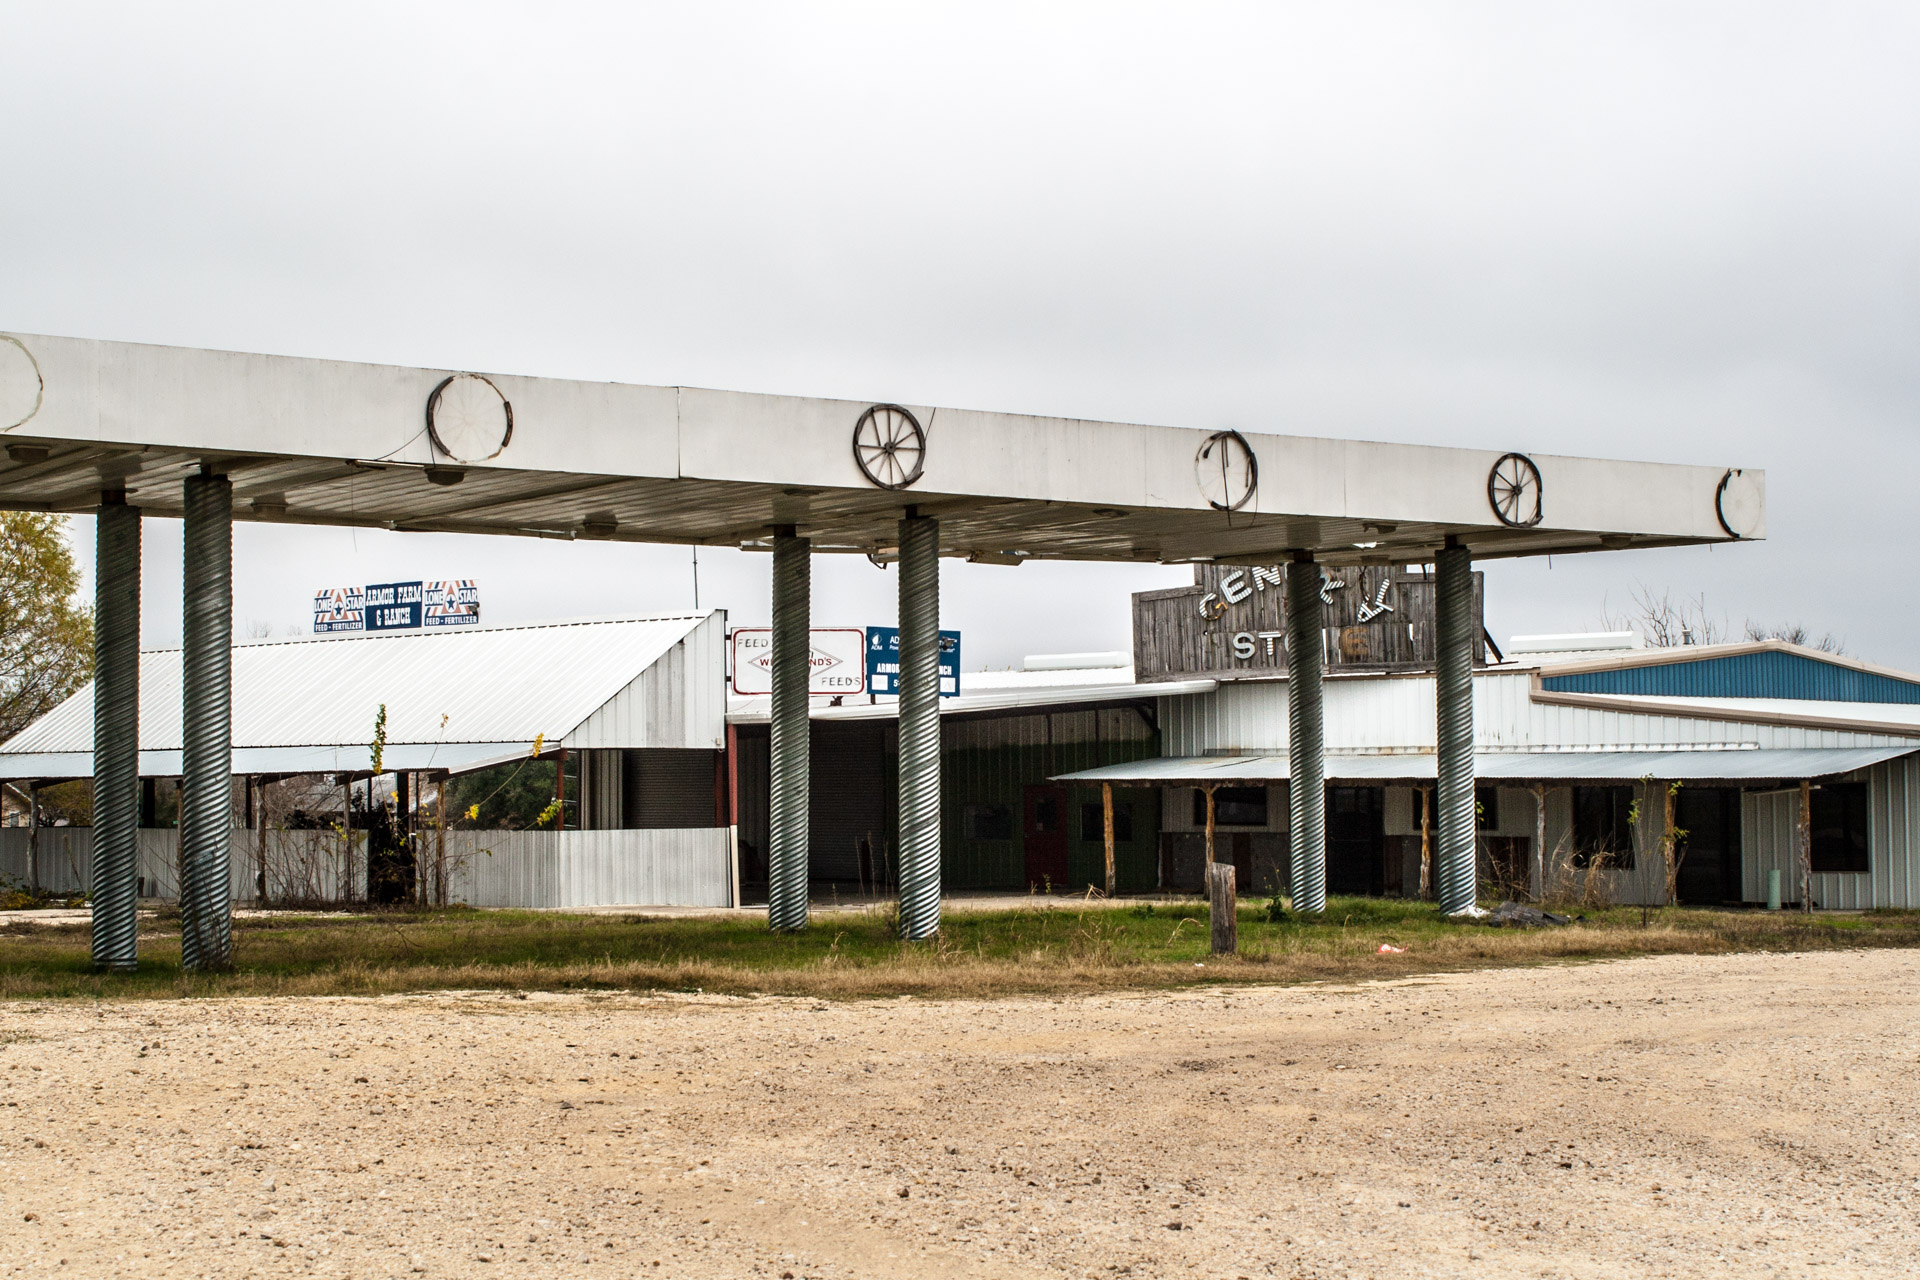 Taylor, Texas - The General Store Gas Station (mid)